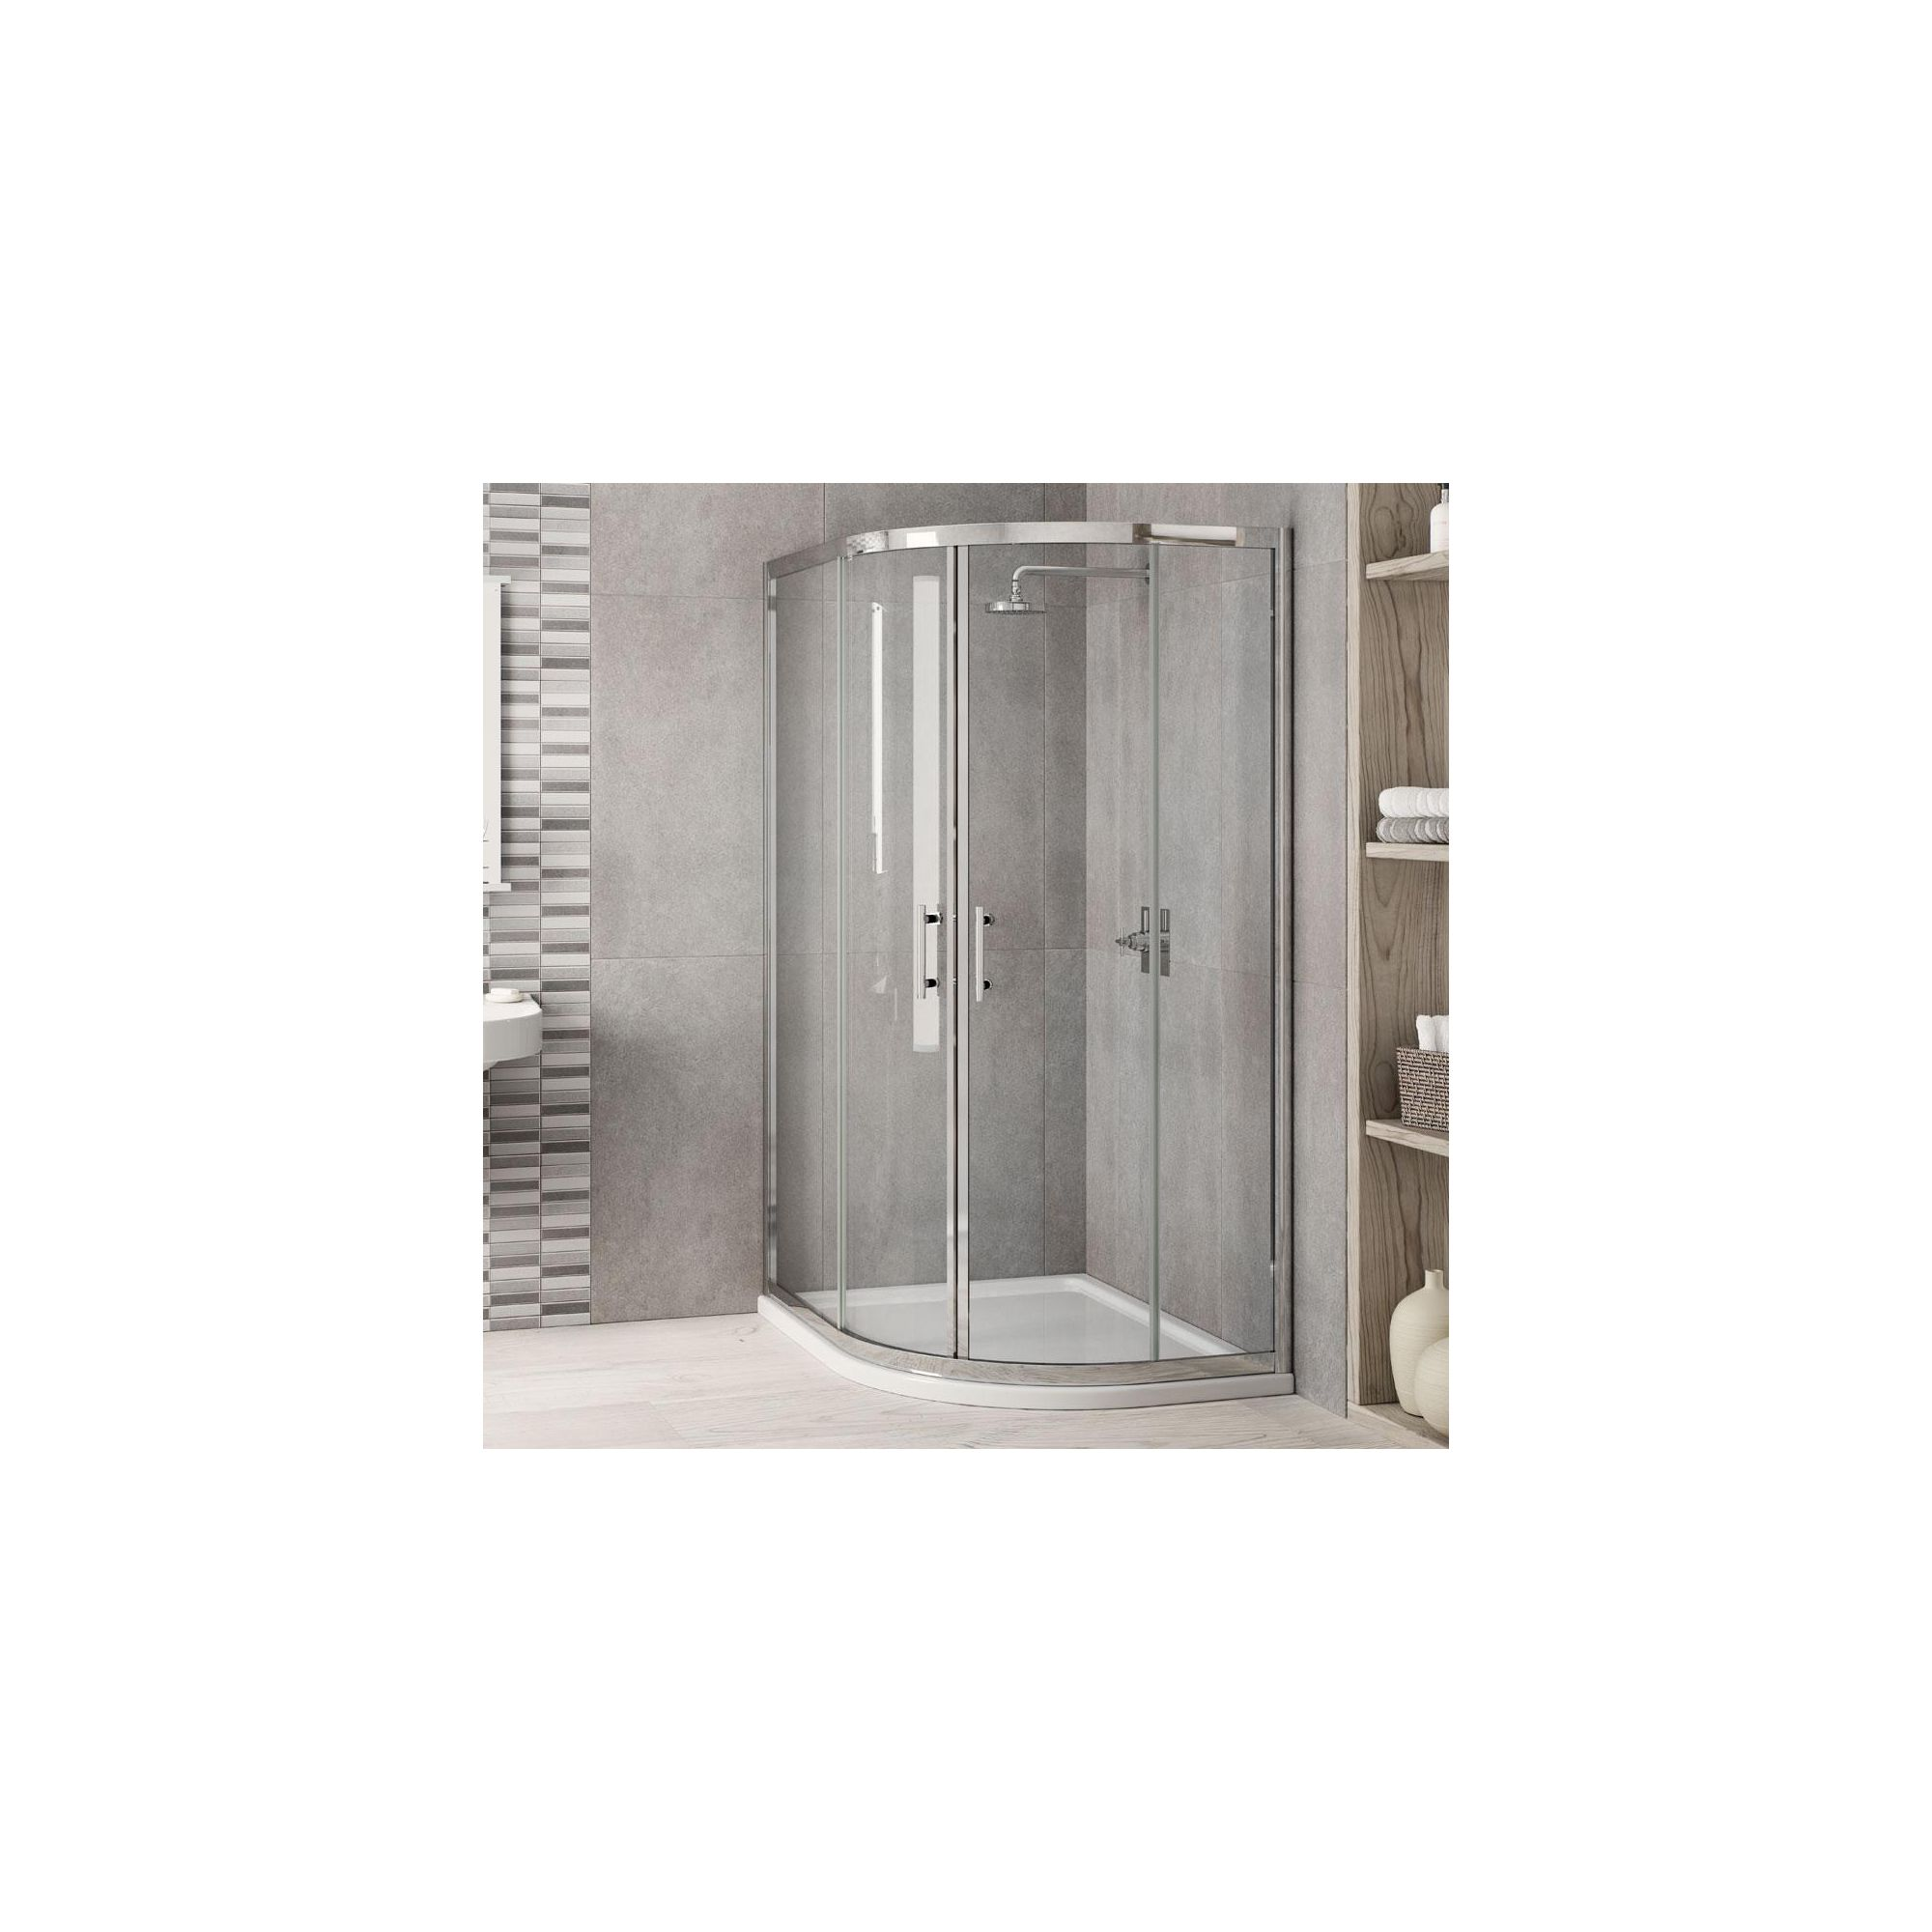 Elemis Inspire Two-Door Offset Quadrant Shower Door, 1200mm x 800mm, 6mm Glass at Tesco Direct